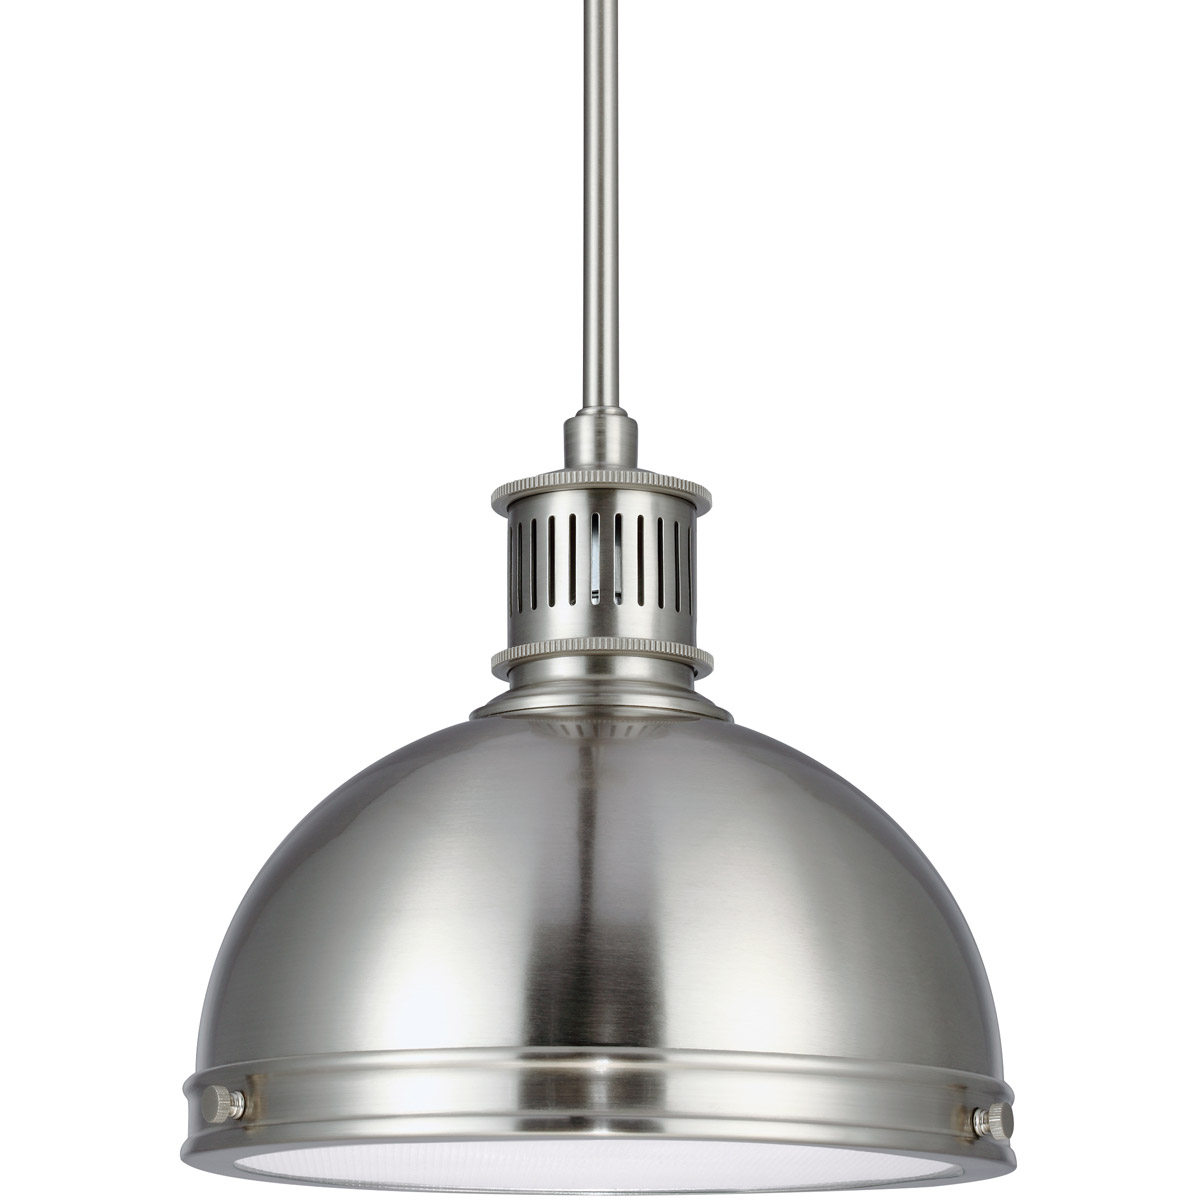 Sea Gull 65085-962 Pratt Street Metal 1 Light 10 inch Brushed Nickel Pendant Ceiling Light photo